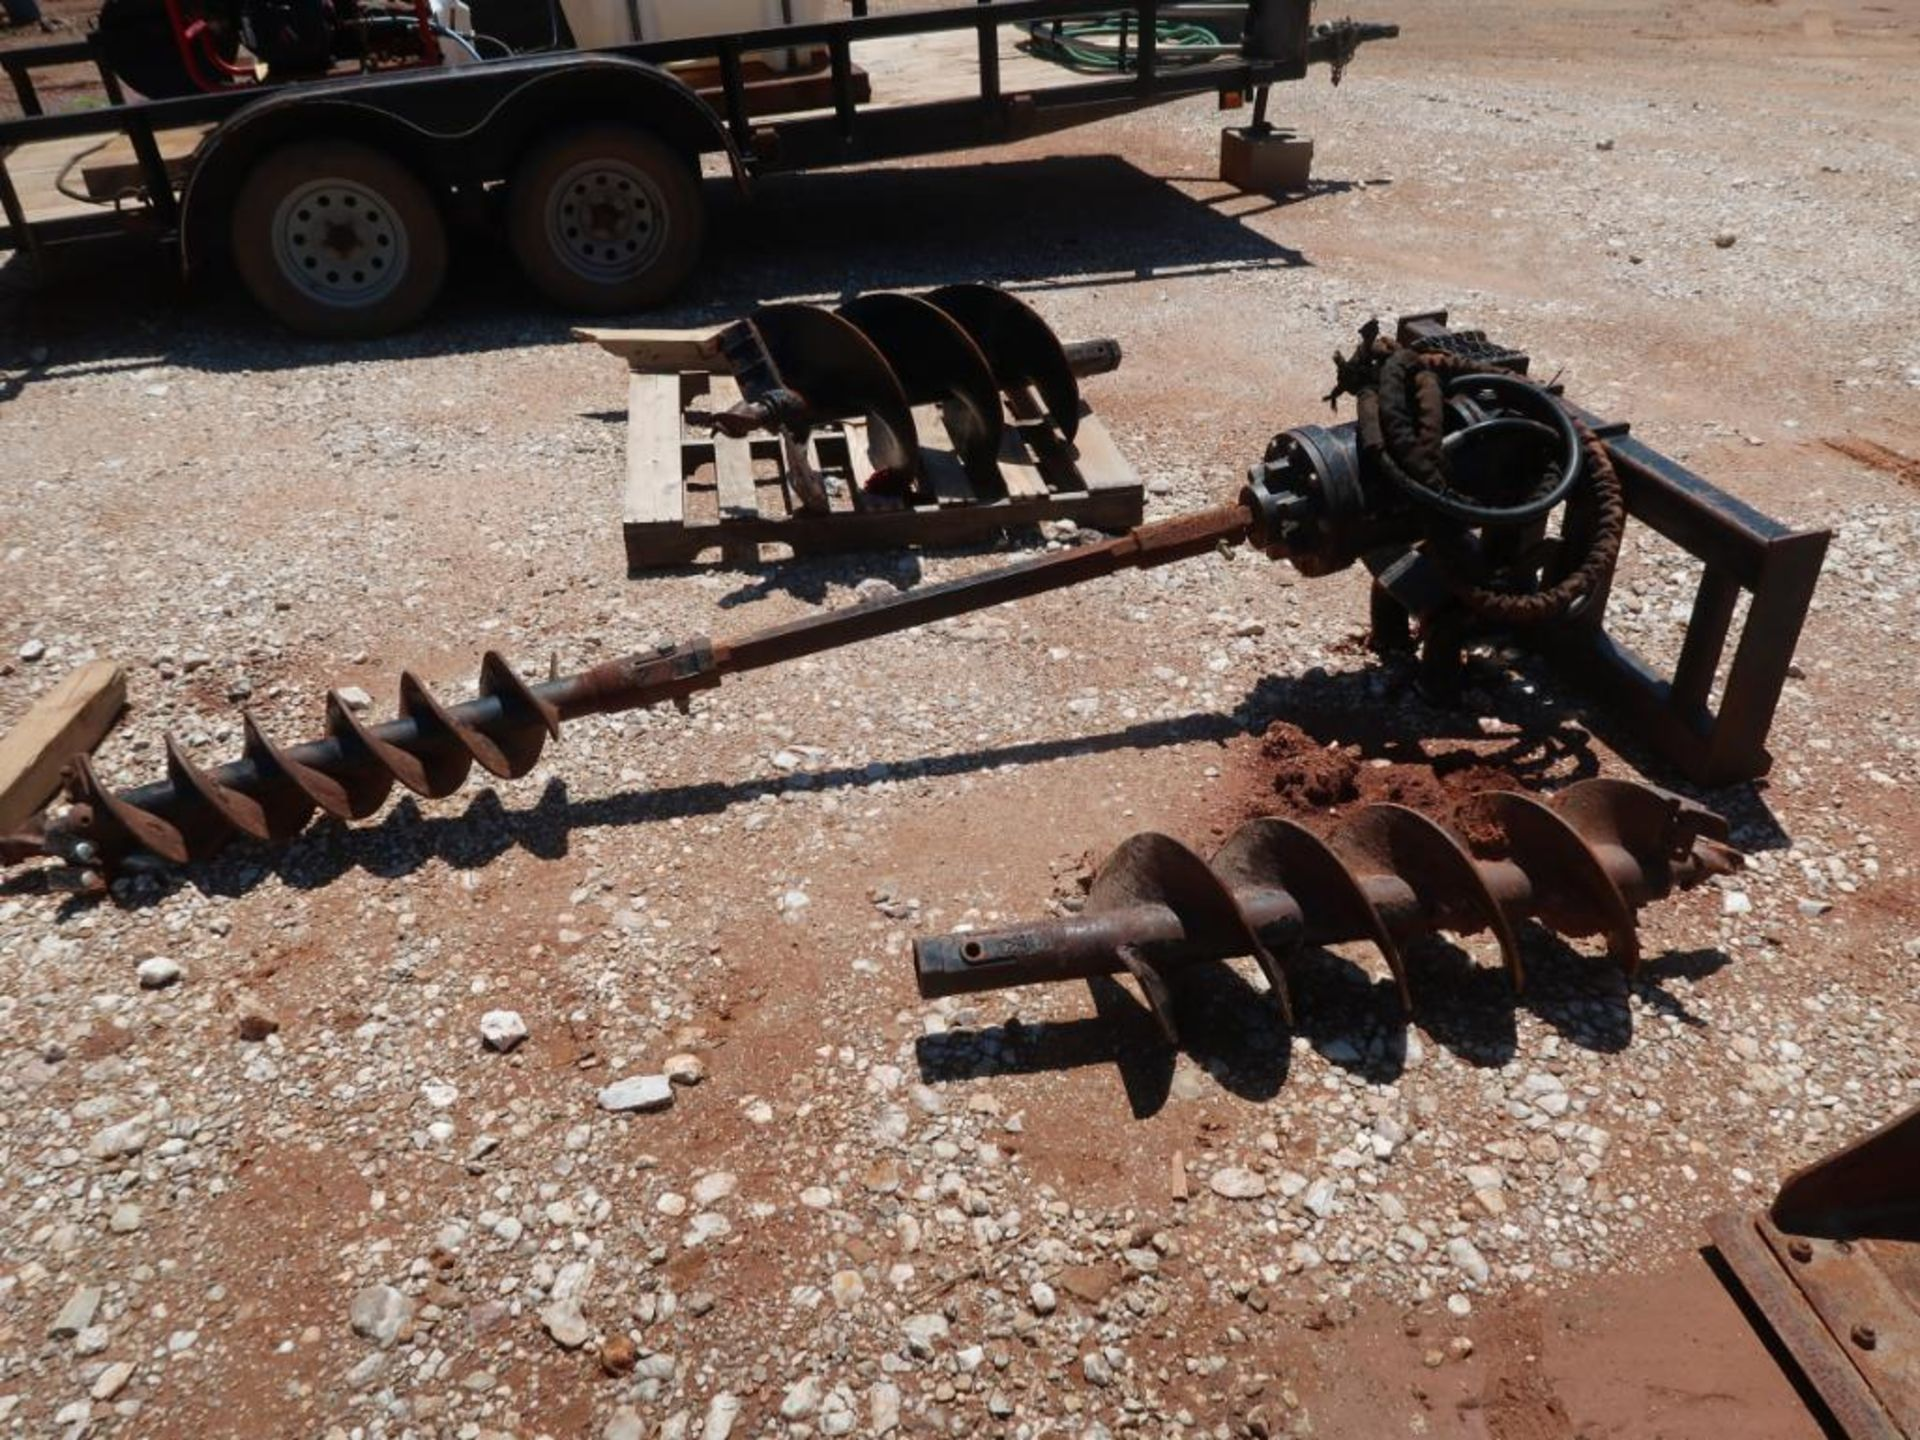 Lot 243 - Caterpillar Hydraulic Post Hole Digger, 8 in., 12 in., 18 in. Bits